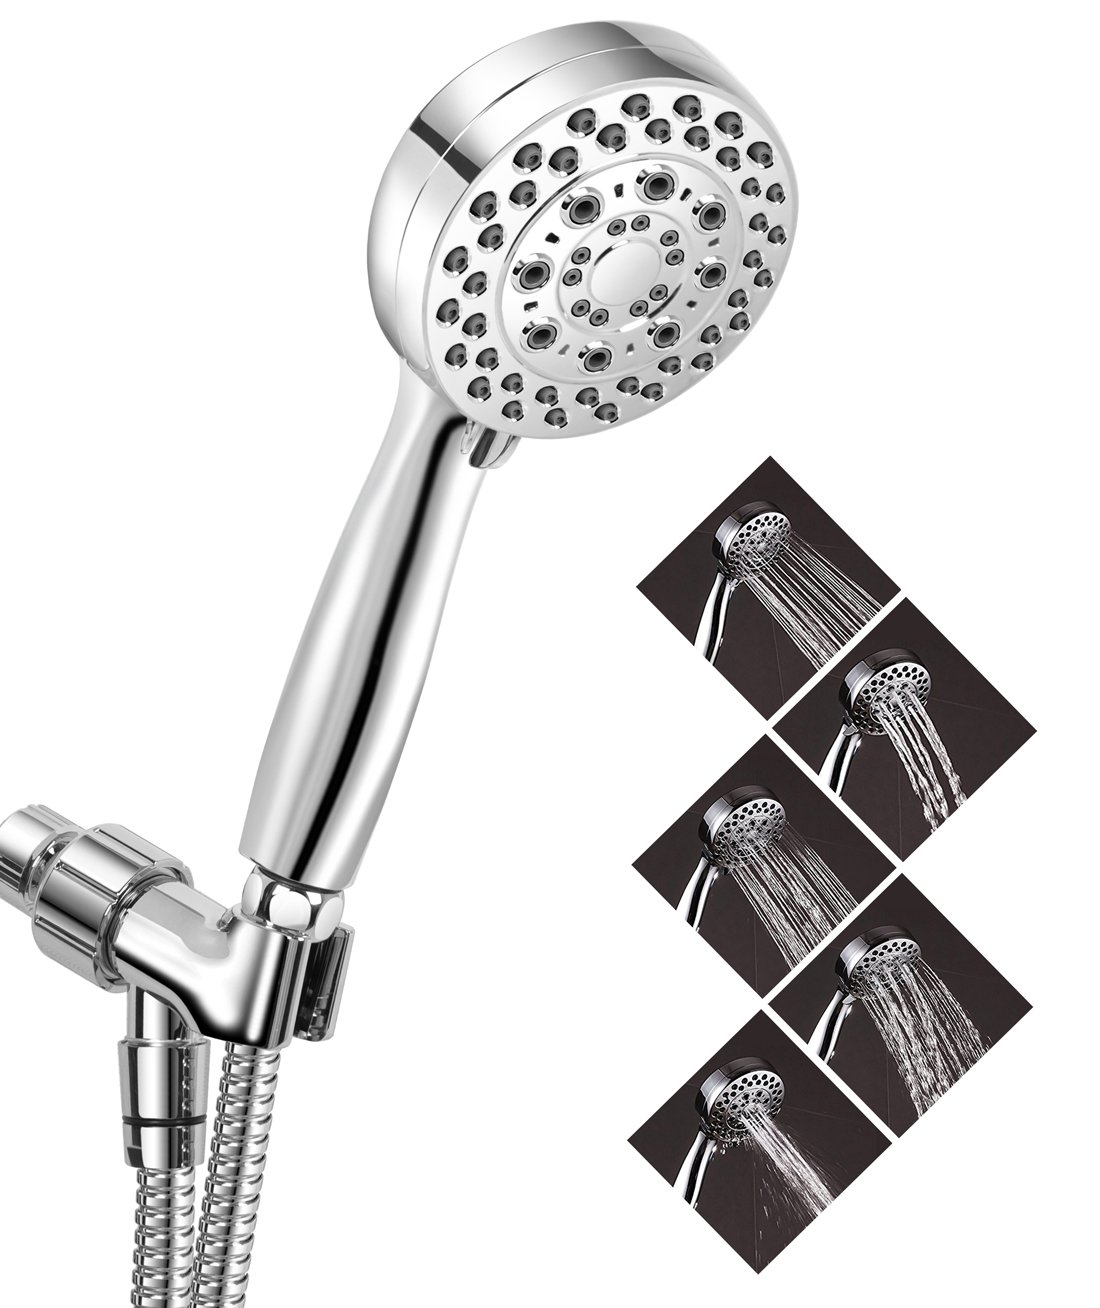 Shower Head With Hose - 5 Function Shower Head Removable Water Restrictor- Luxury Full Chrome Finish Hand Shower by SuperArt (Image #2)